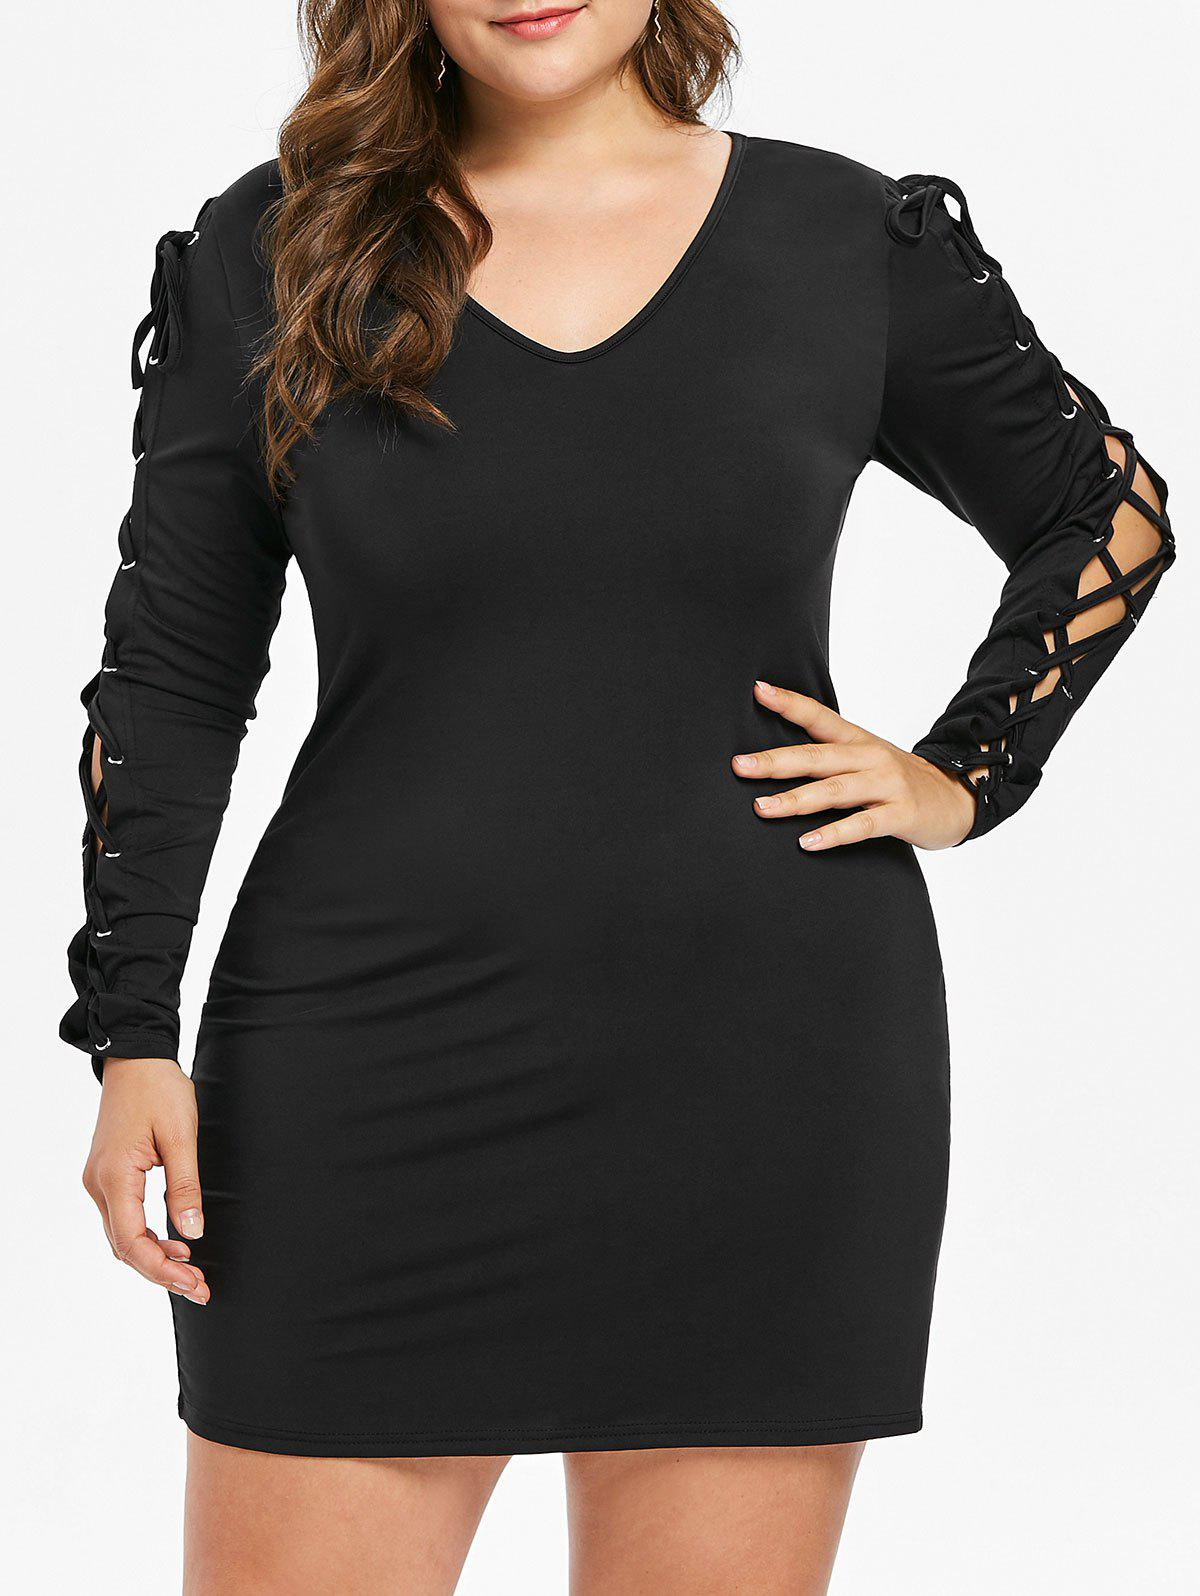 Affordable Lace Up Sleeve Plus Size Bodycon Dress